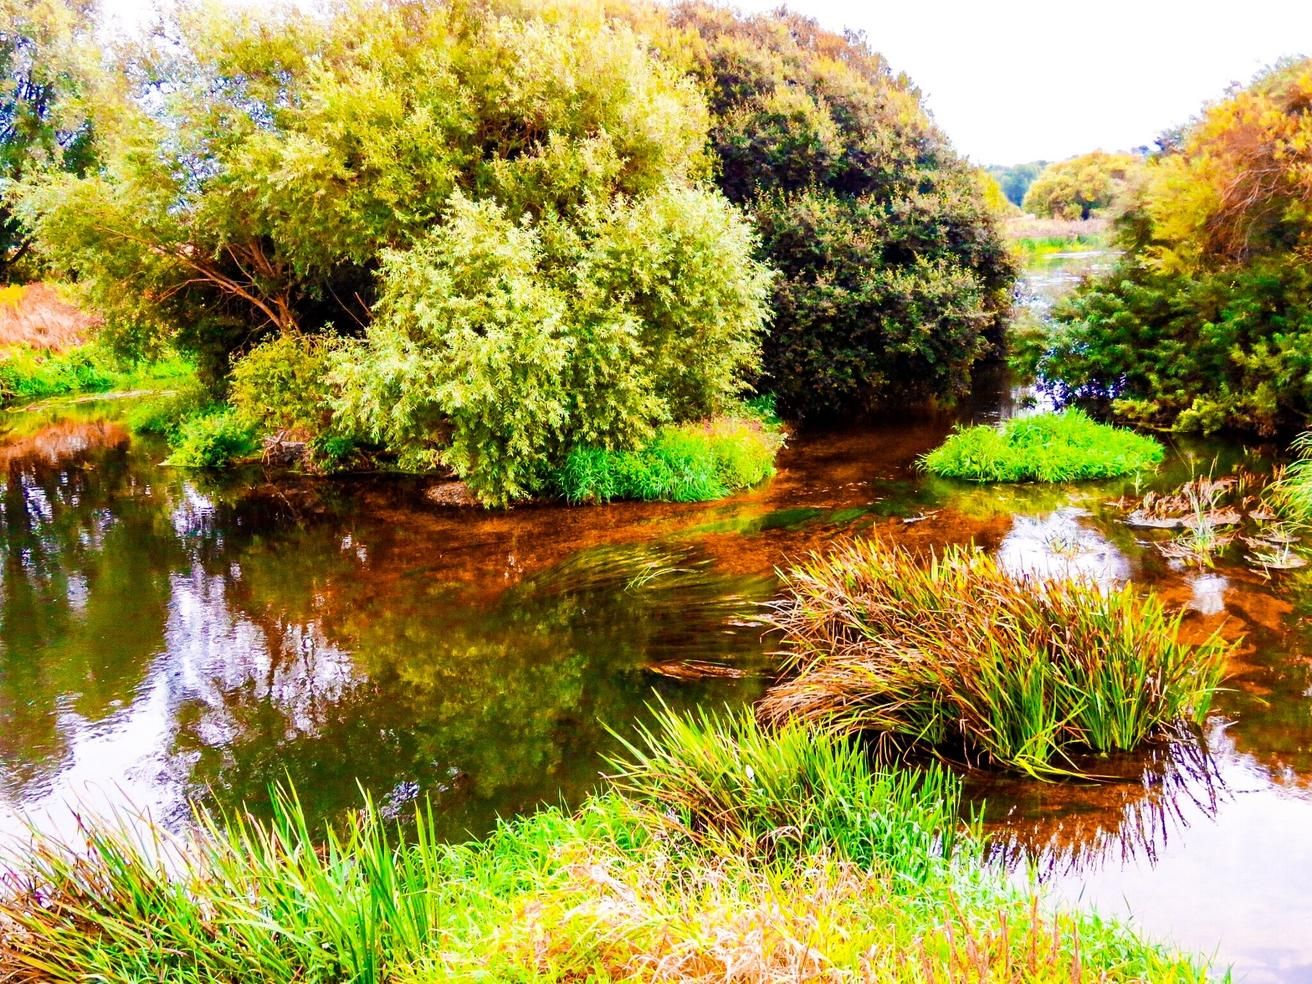 Check out the photo I entered in 'Rivers and streams'. Enter free #photography #contests @photocrowd